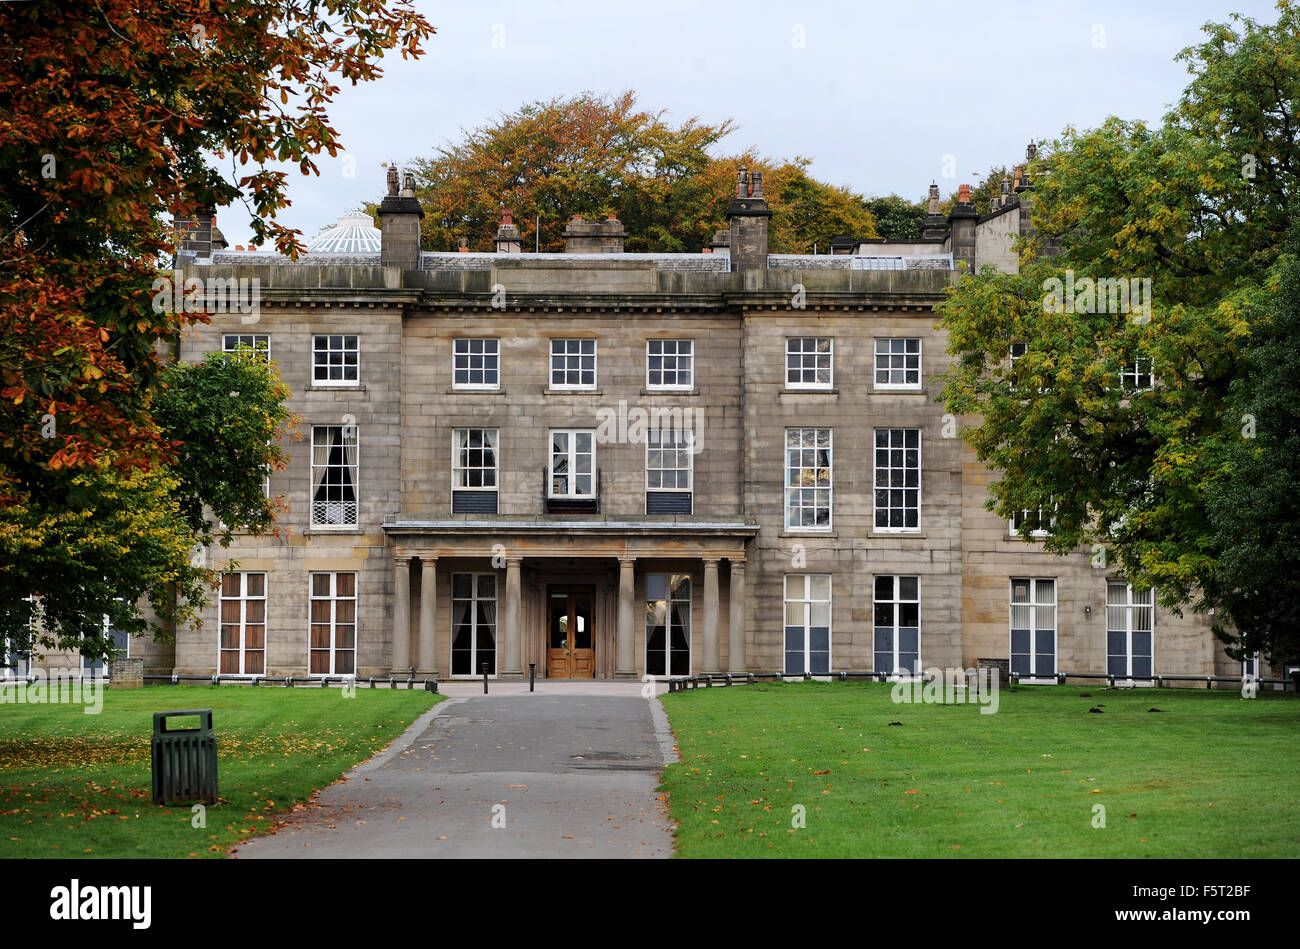 Haigh Hall, Wigan, Lancashire, UK. Picture by Paul Heyes, October 13, 2015. - Stock Image